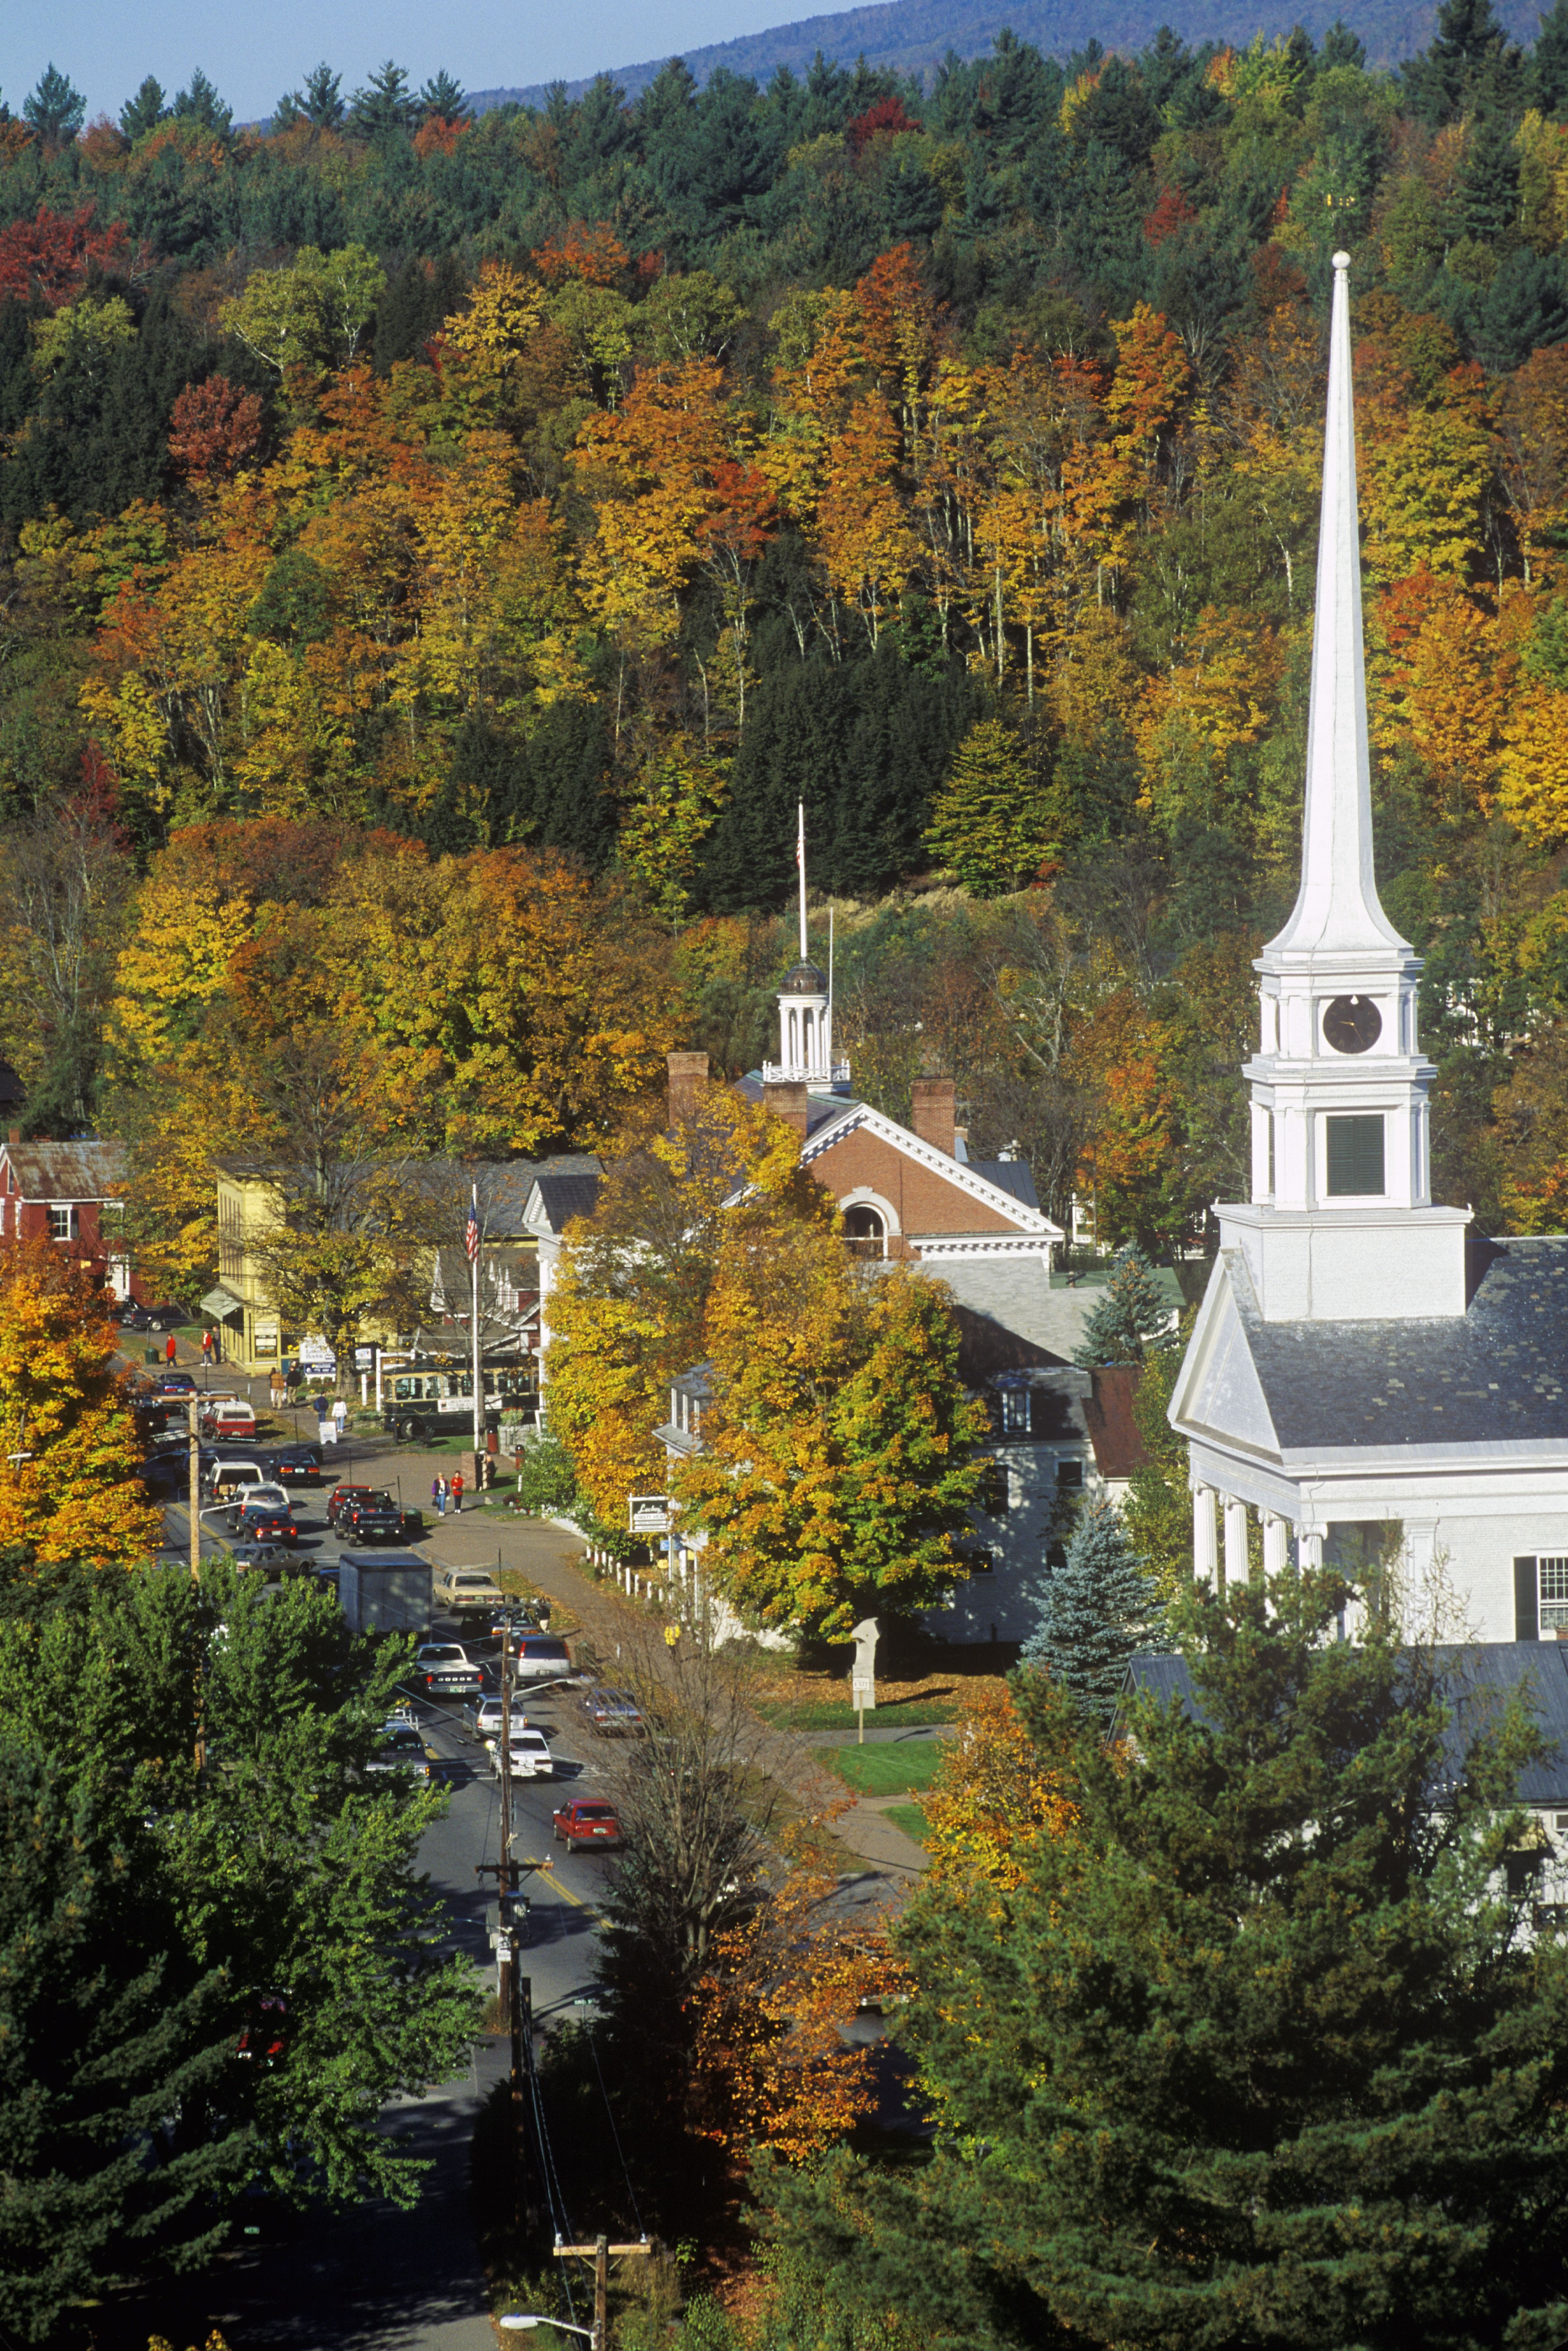 Scenic Route 100 in Stowe Vermont